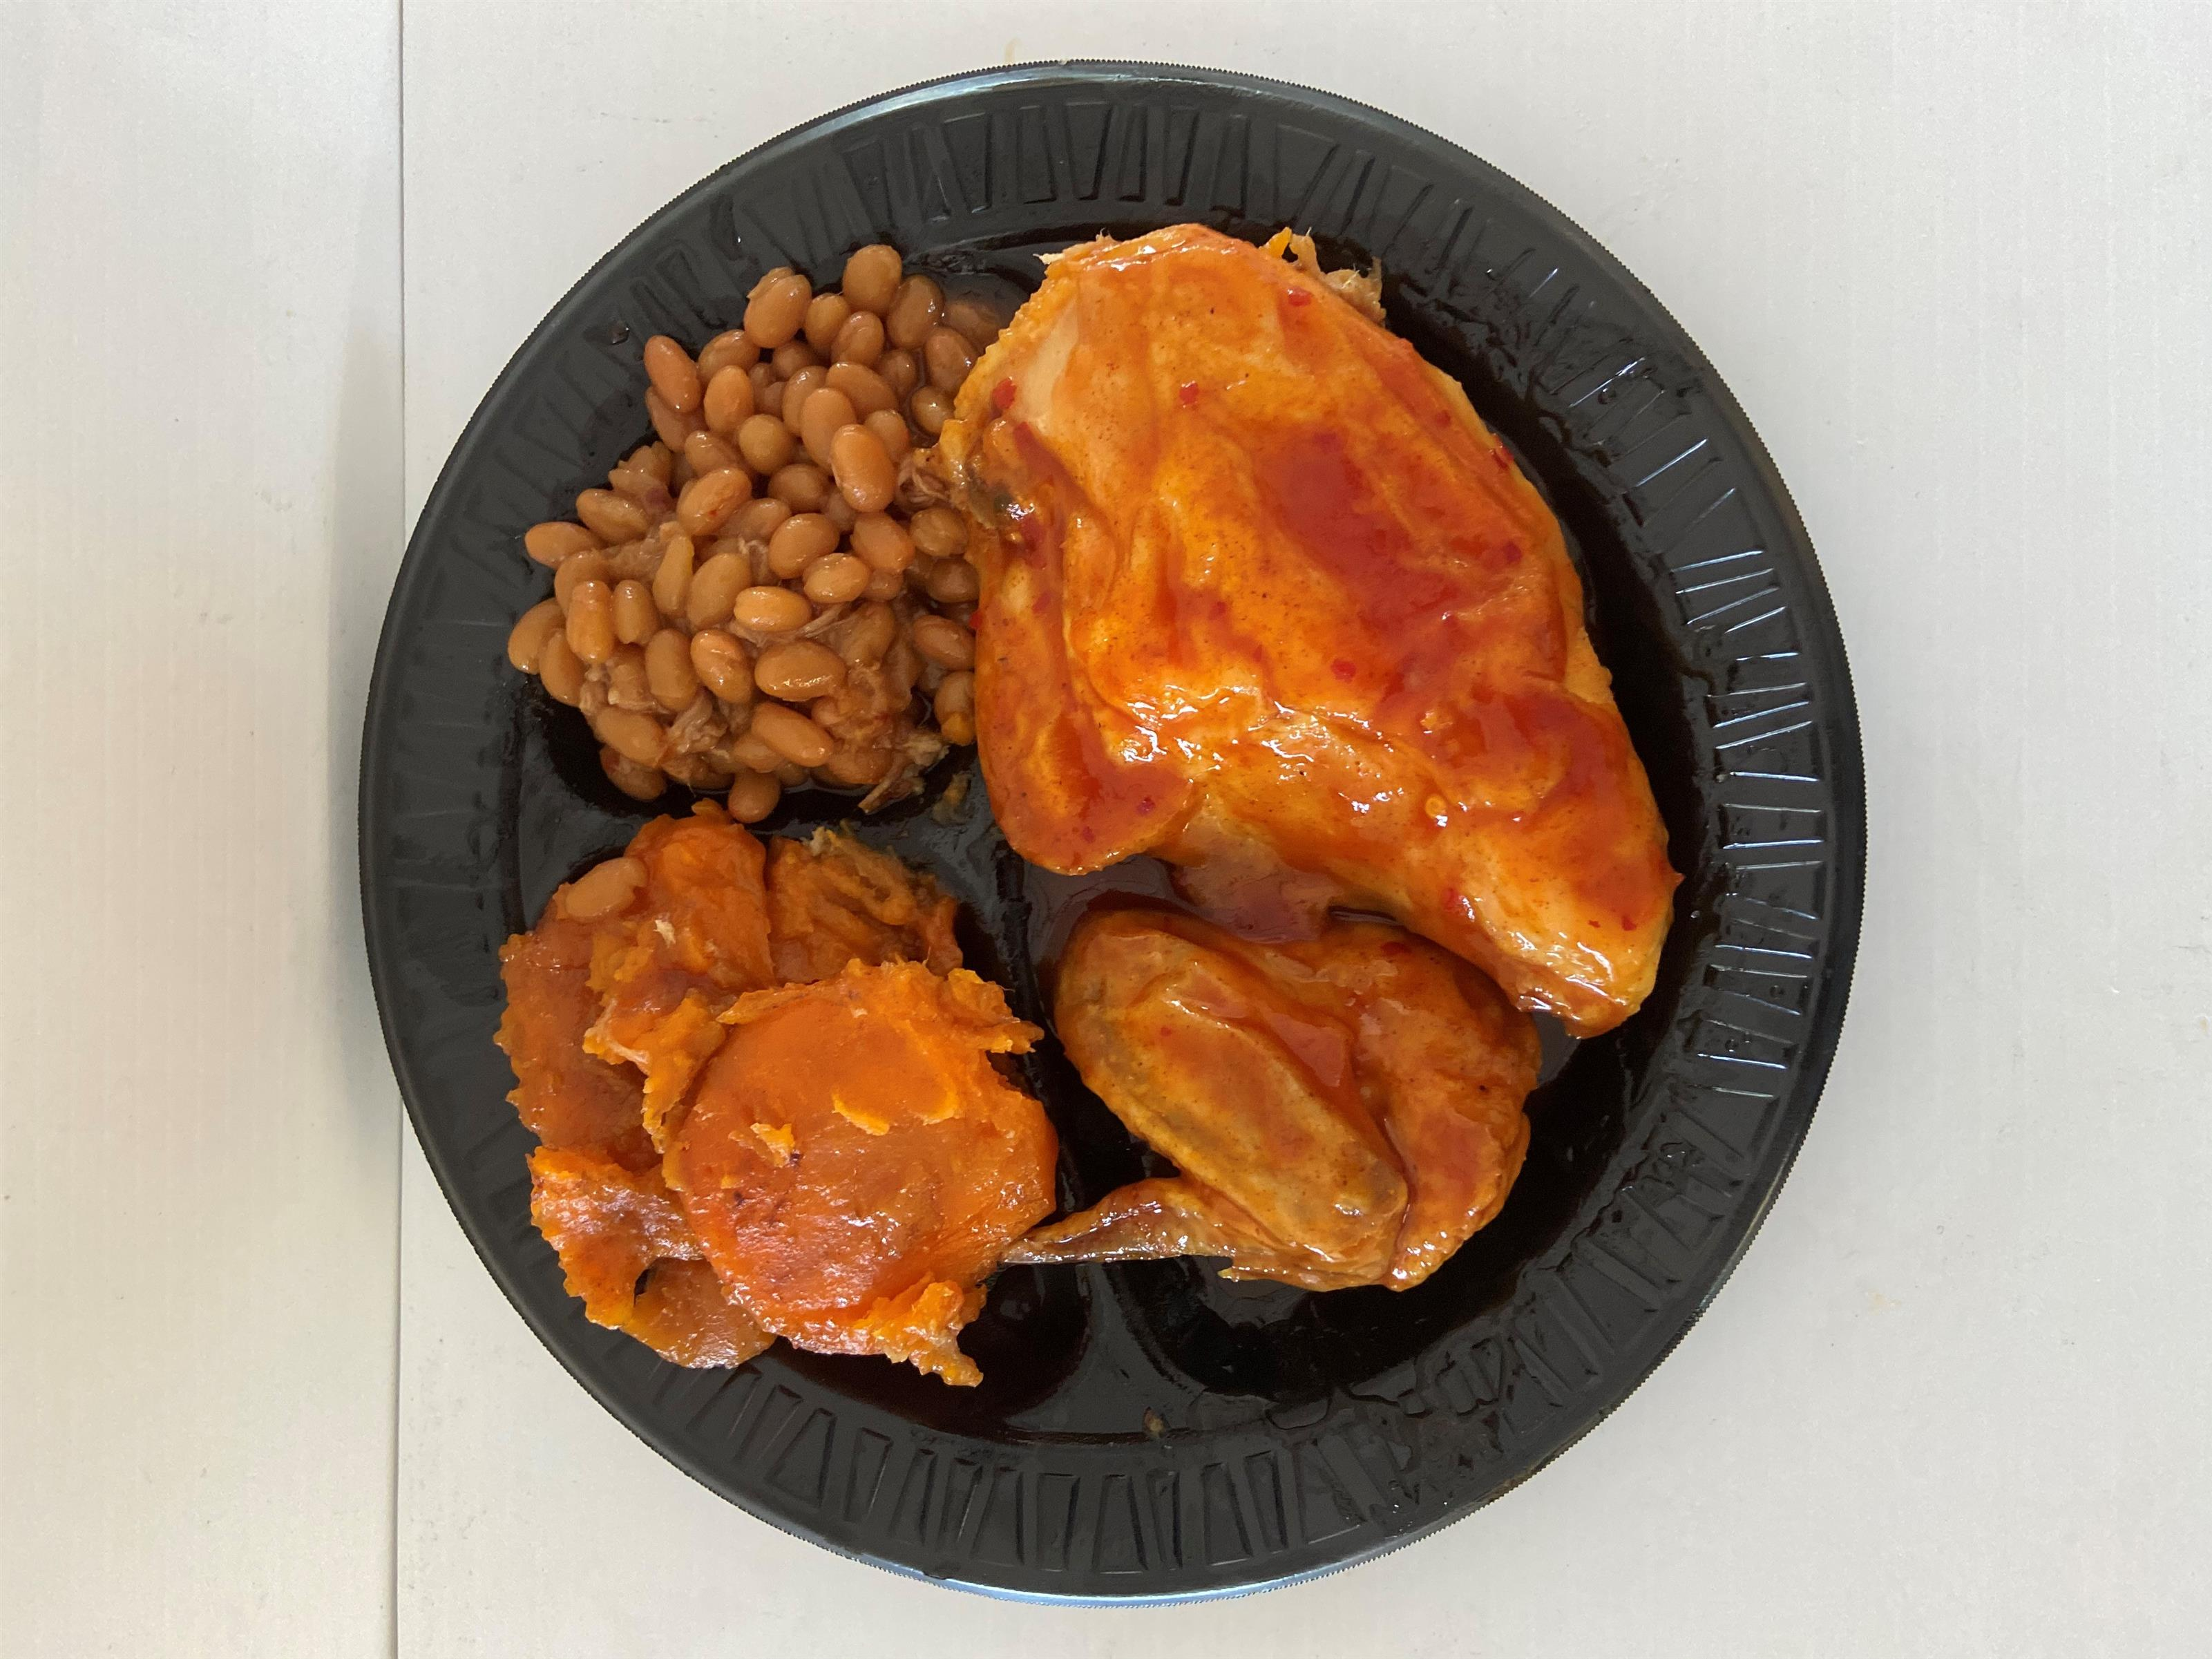 plate of pieces of BBQ chicken, mashed sweet potatoes and baked beans